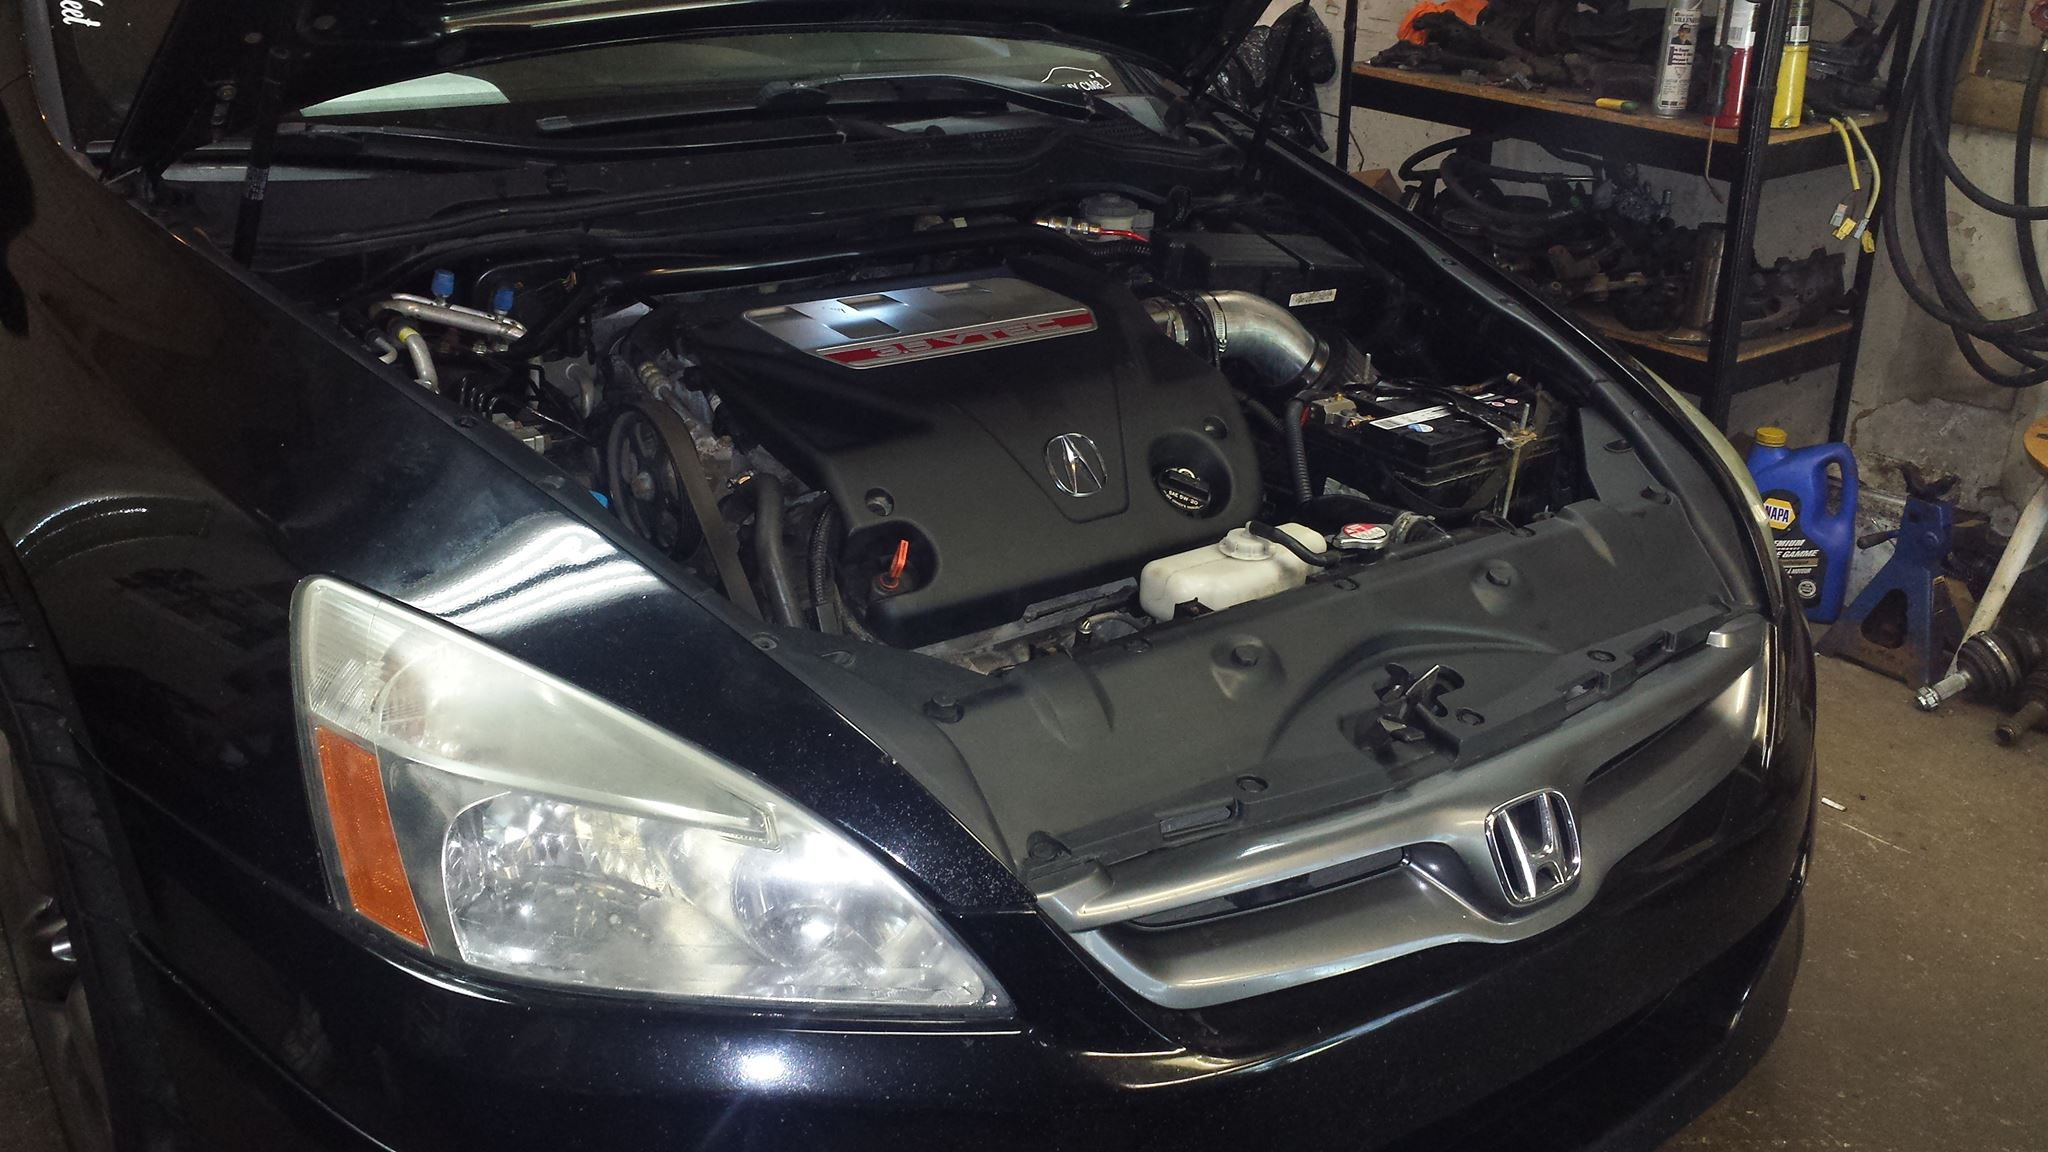 2006-accord-j35a8-2008-acura-tl-type-s-2